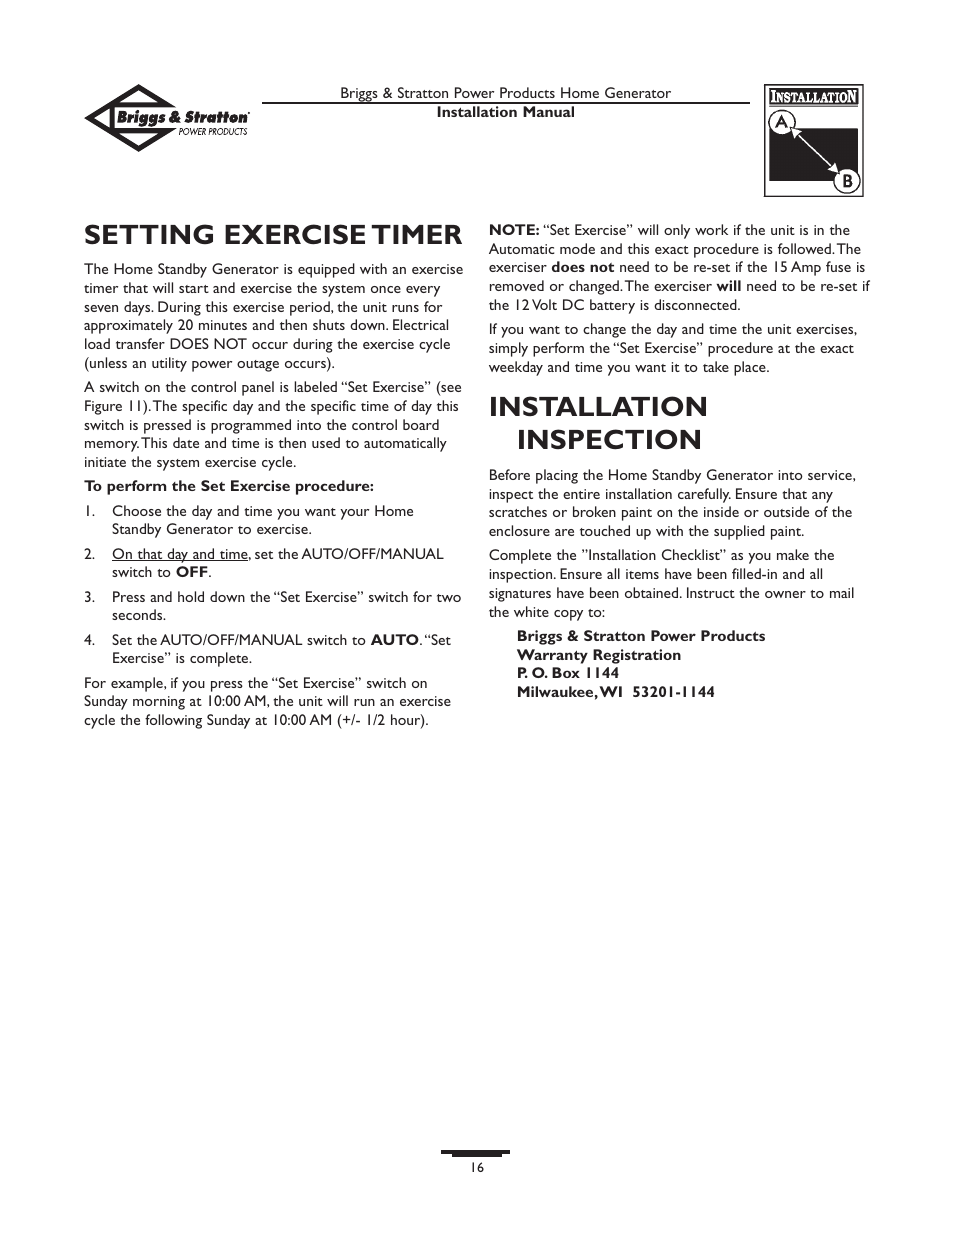 setting exercise timer  installation inspection